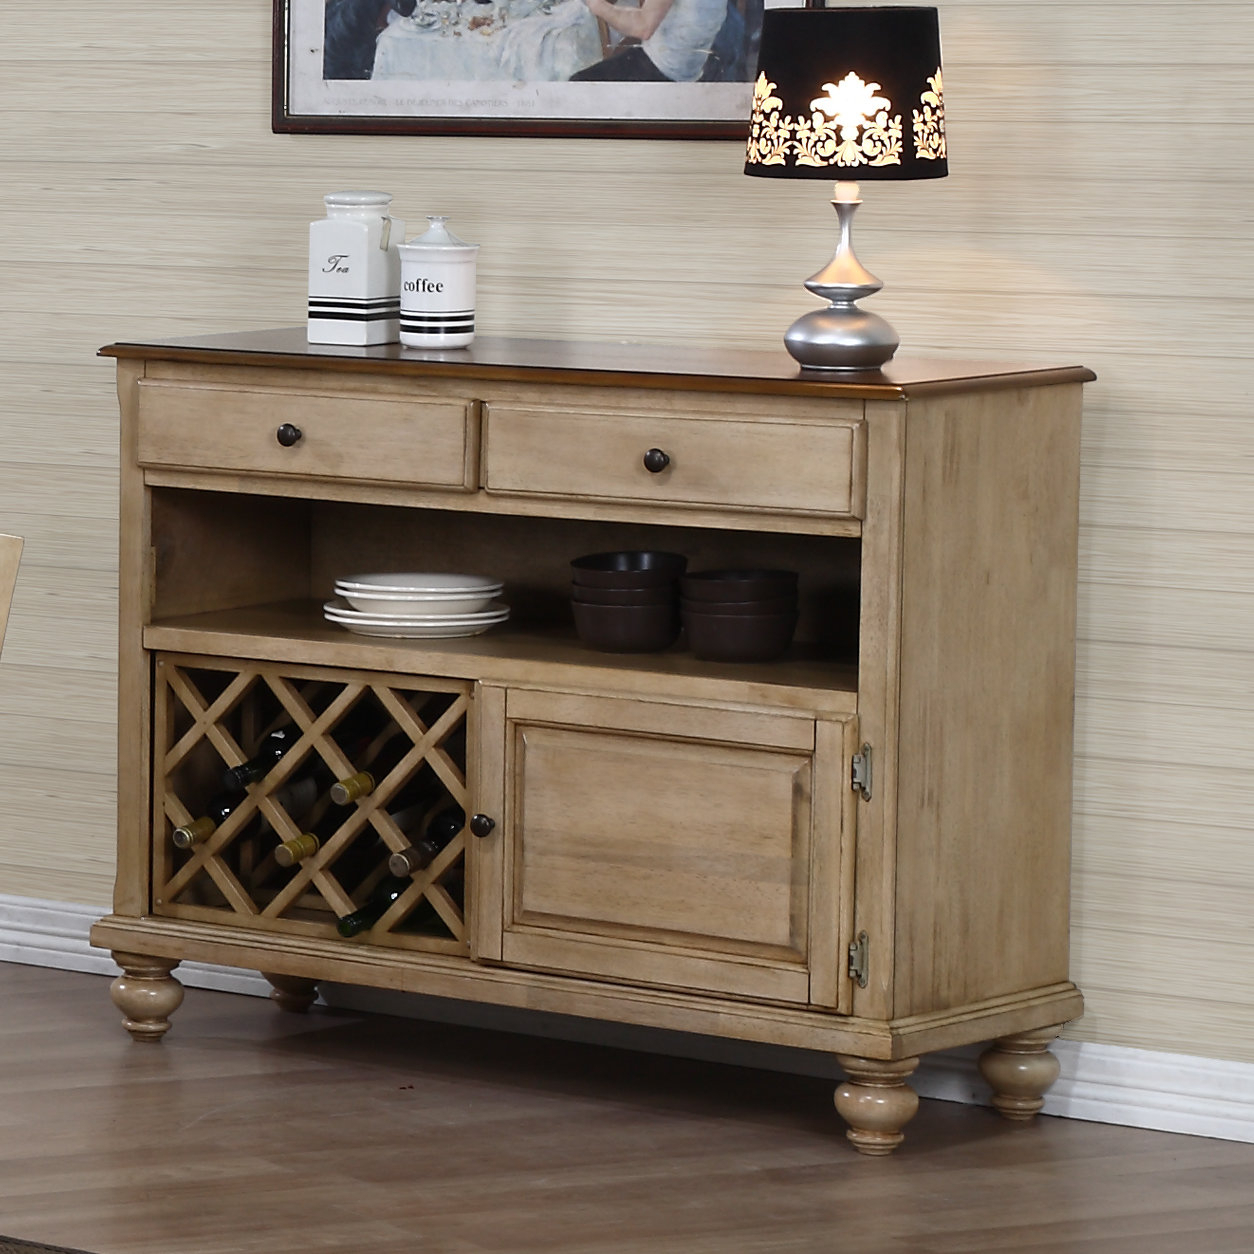 Rustic Yellow Sideboards & Buffets You'll Love In 2019 | Wayfair Pertaining To Arminta Wood Sideboards (Gallery 4 of 30)